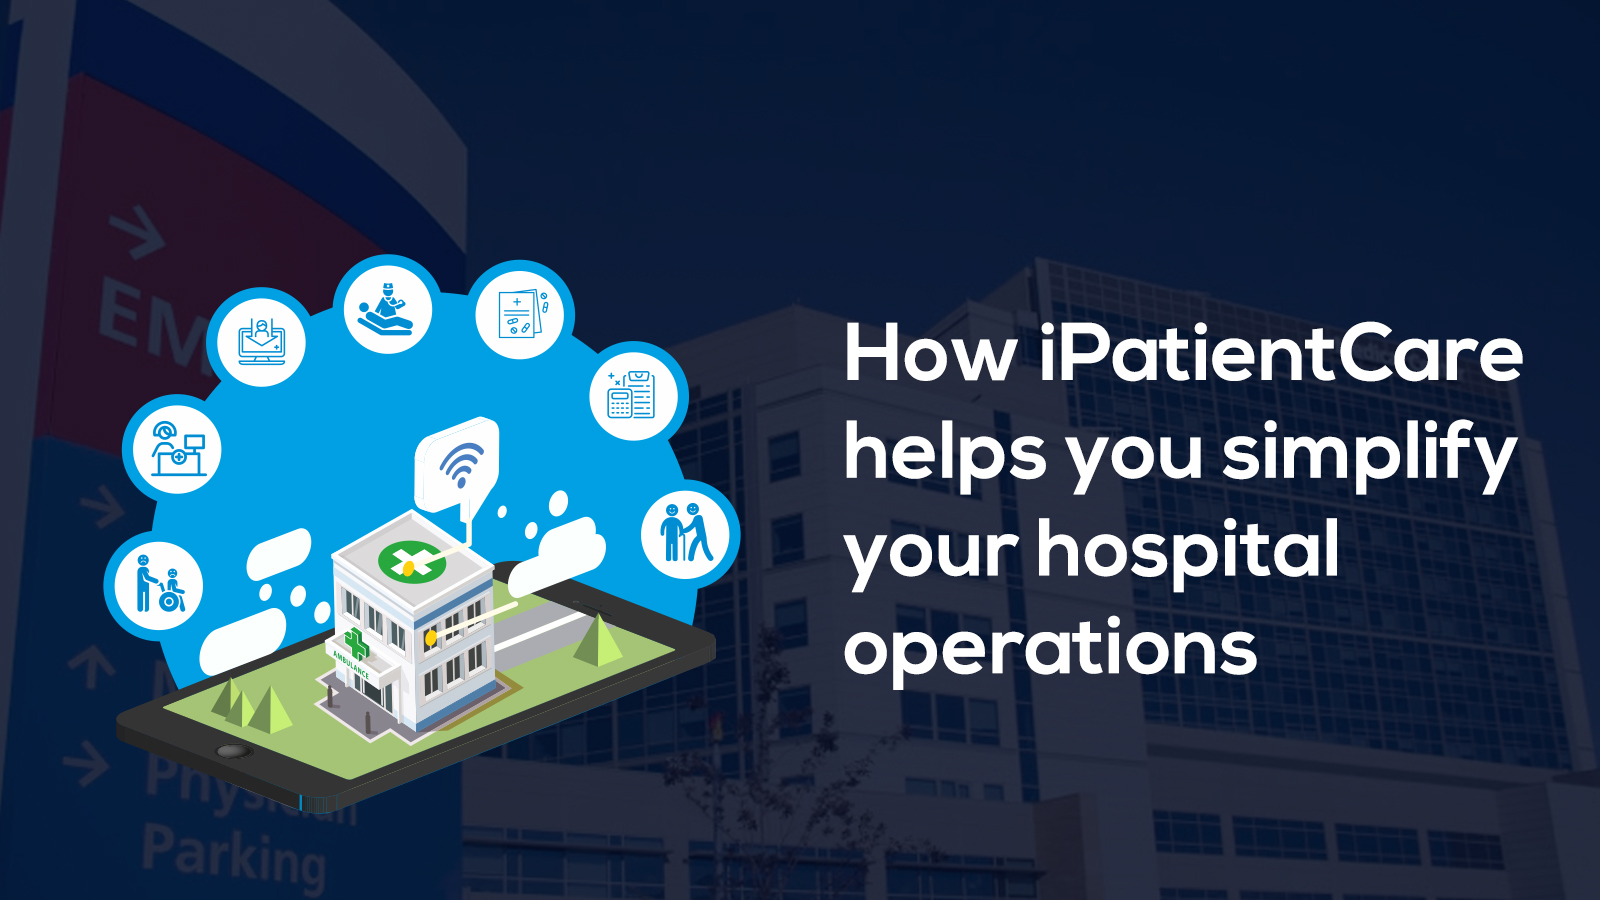 How iPatientCare helps you simplify your hospital operations